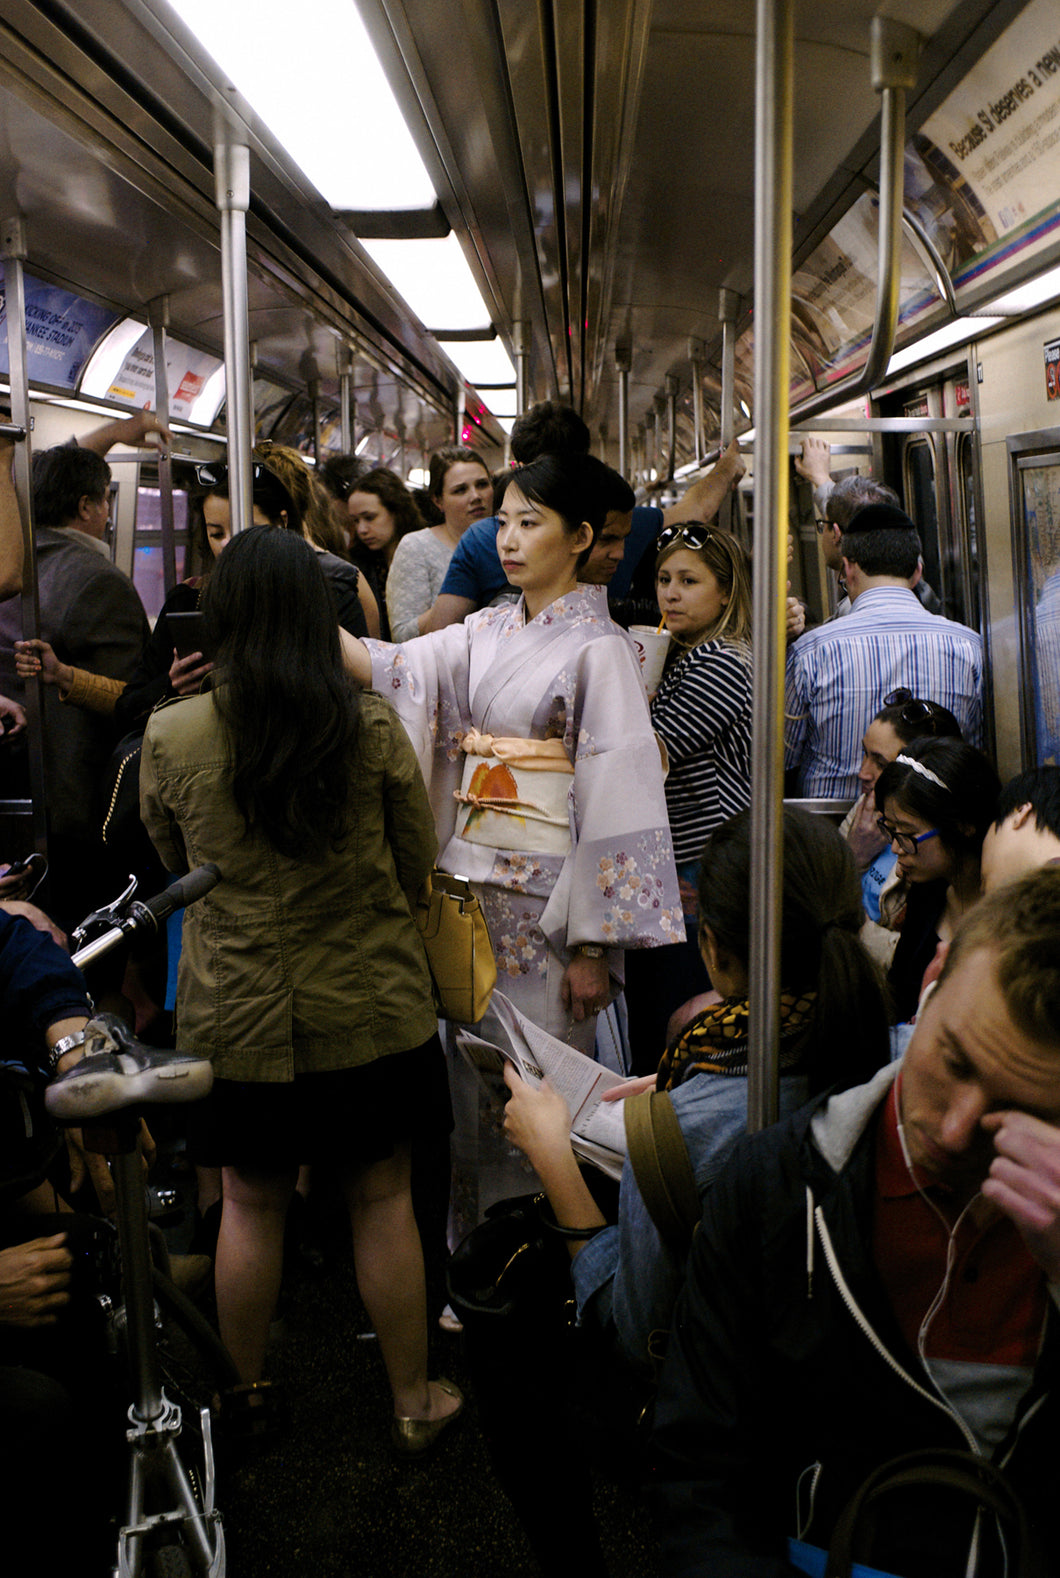 Japanese Woman on the NYC Subway